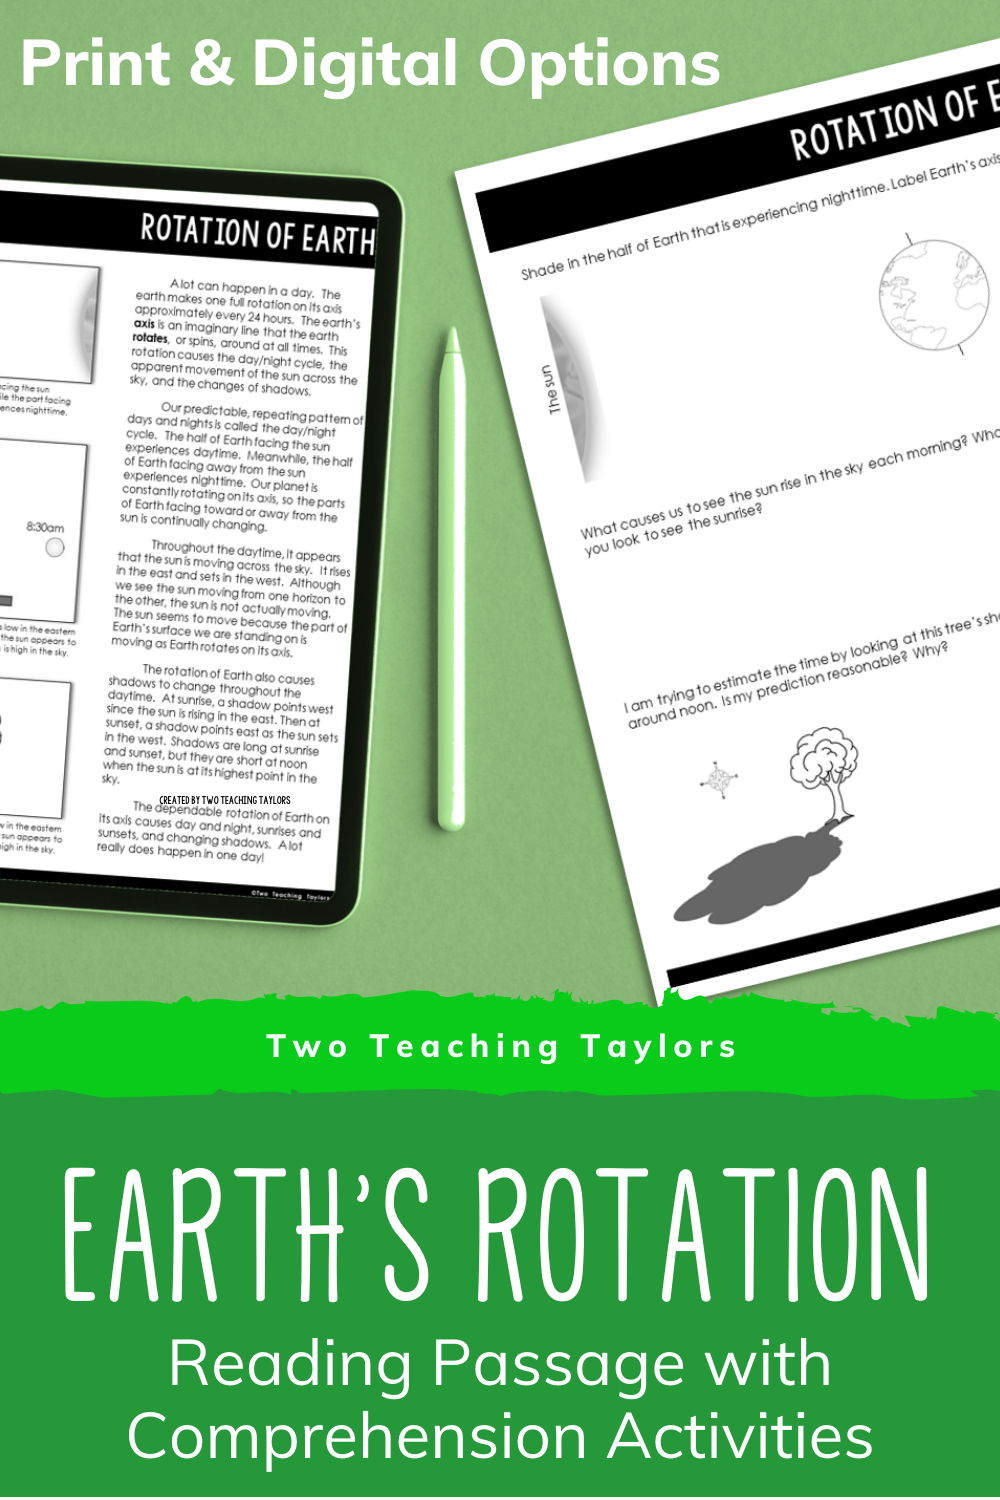 Predownload: Rotation Of Earth Reading Passage With Comprehension Activities Upper Elementary Science Elementary Science Classroom Reading Passages [ 1500 x 1000 Pixel ]